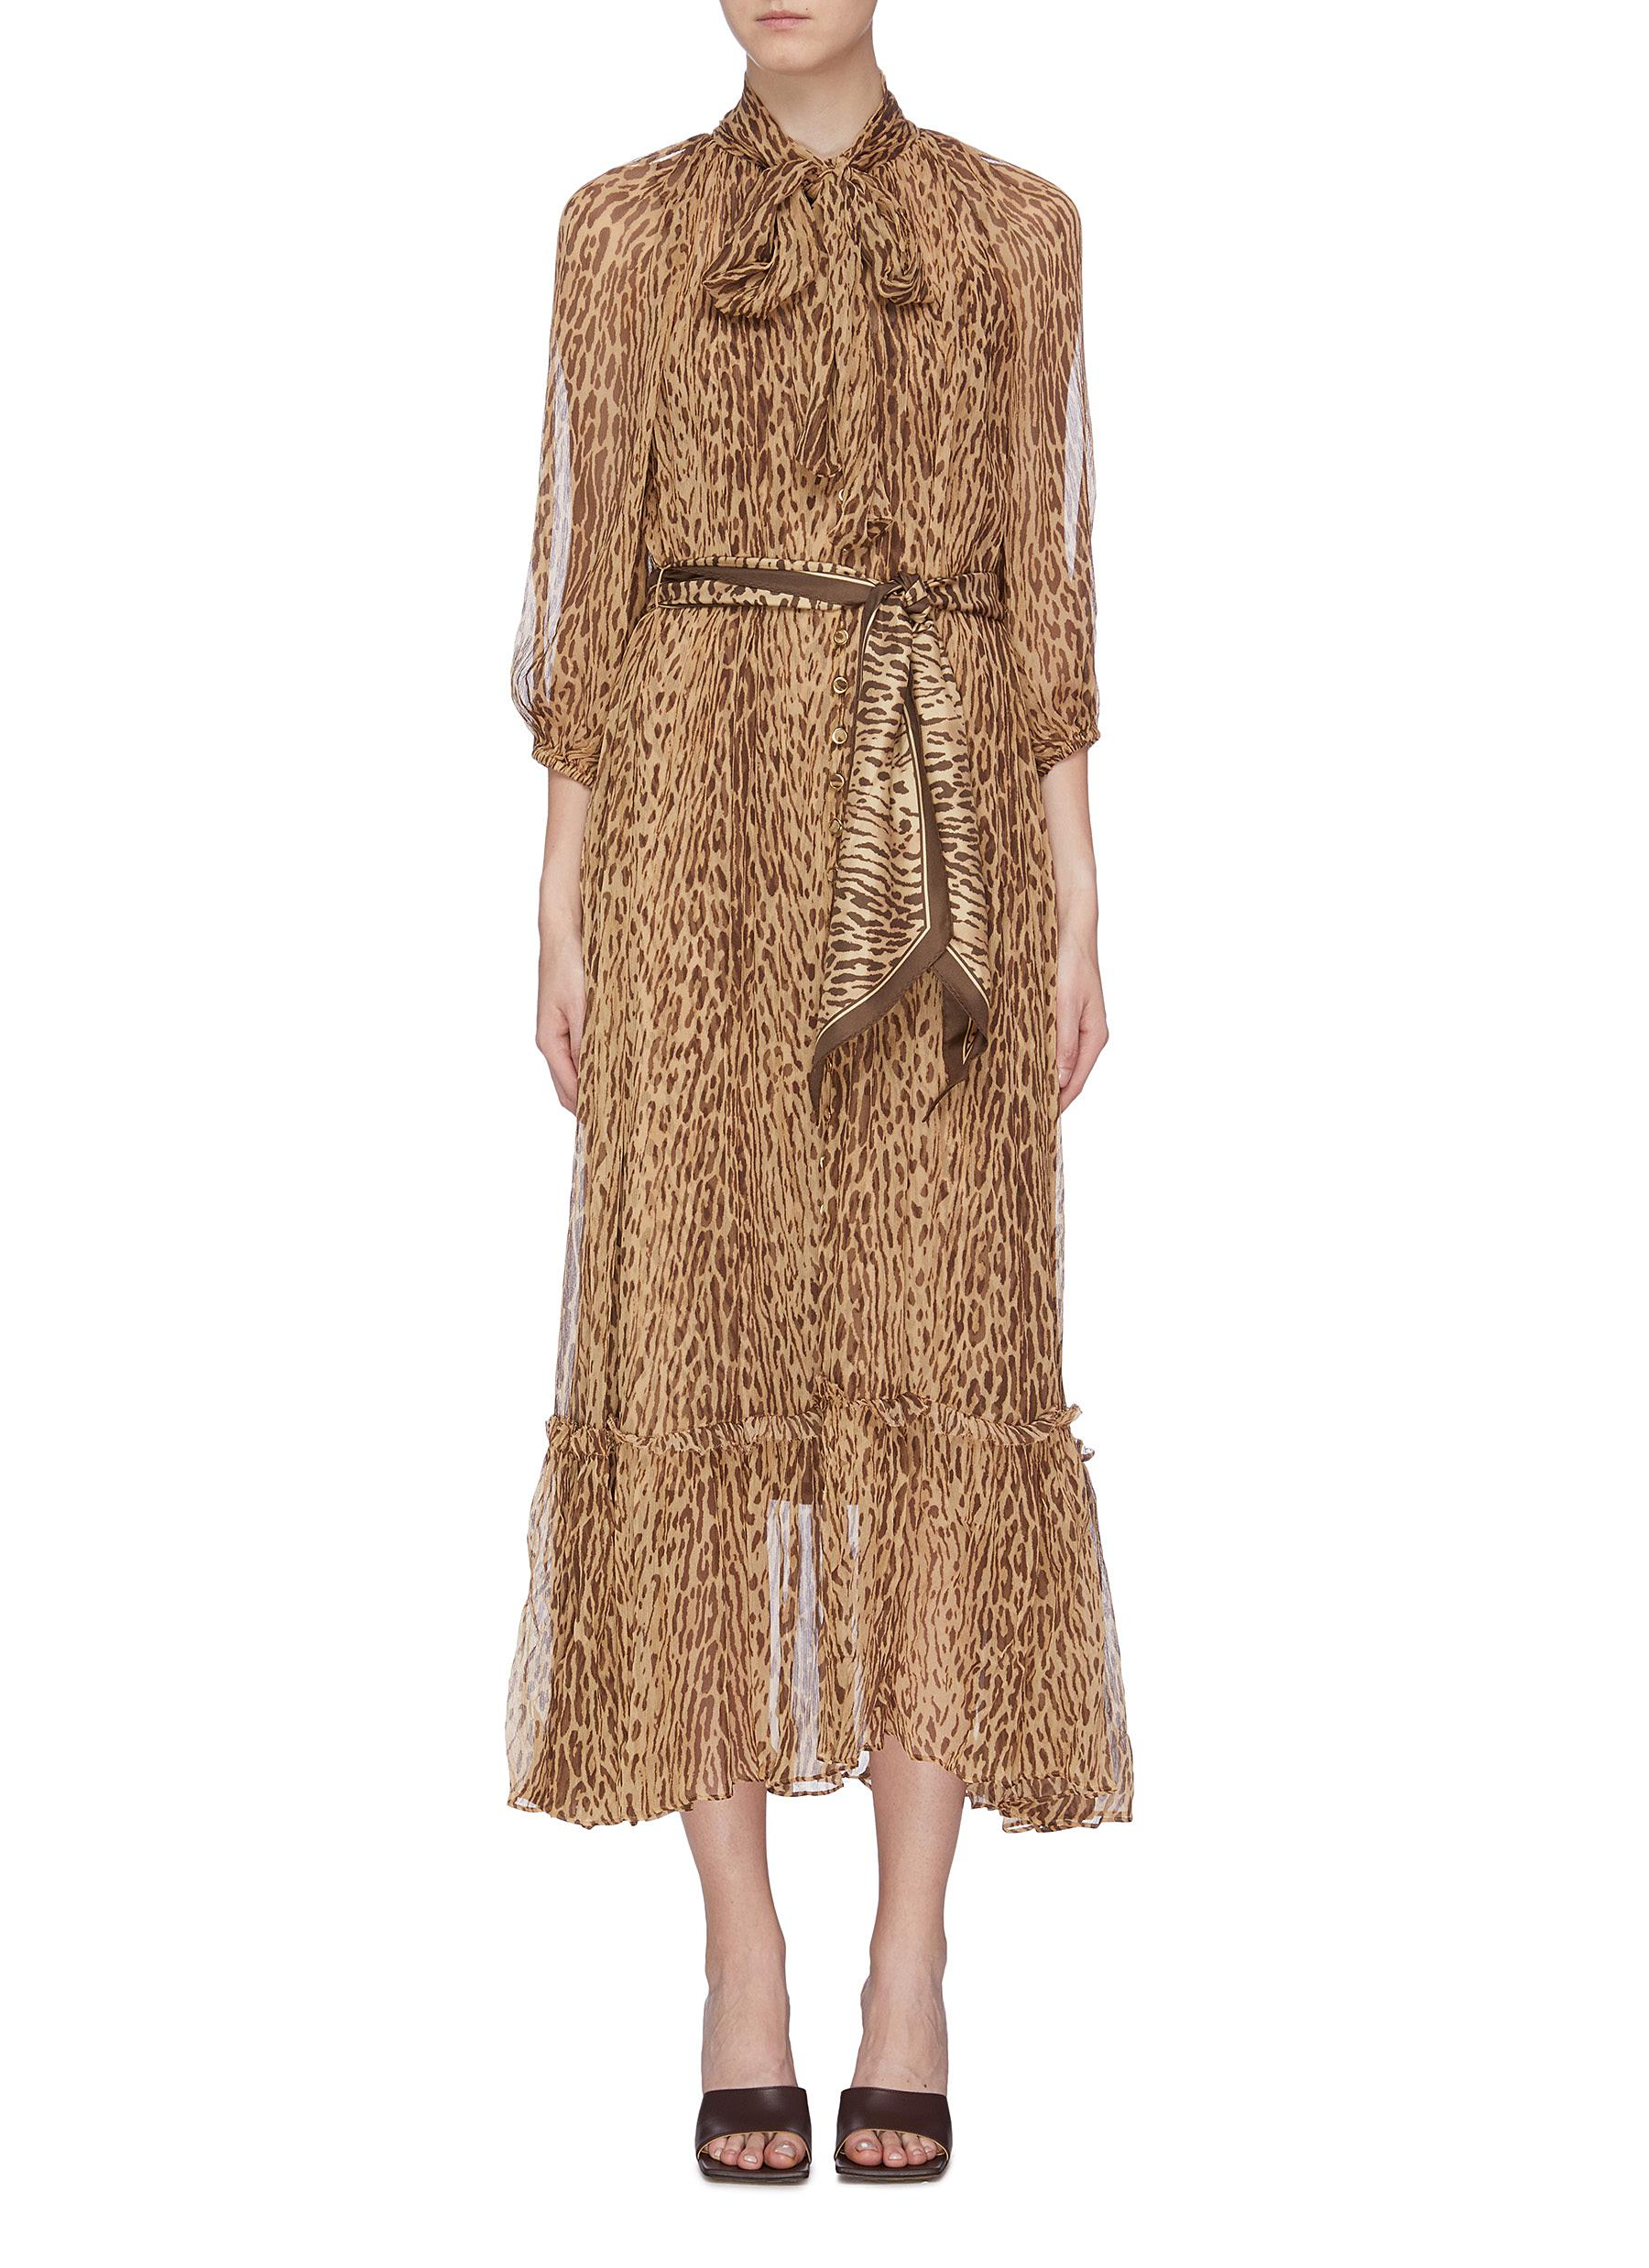 Espionage belted leopard print silk georgette pussybow dress by Zimmermann